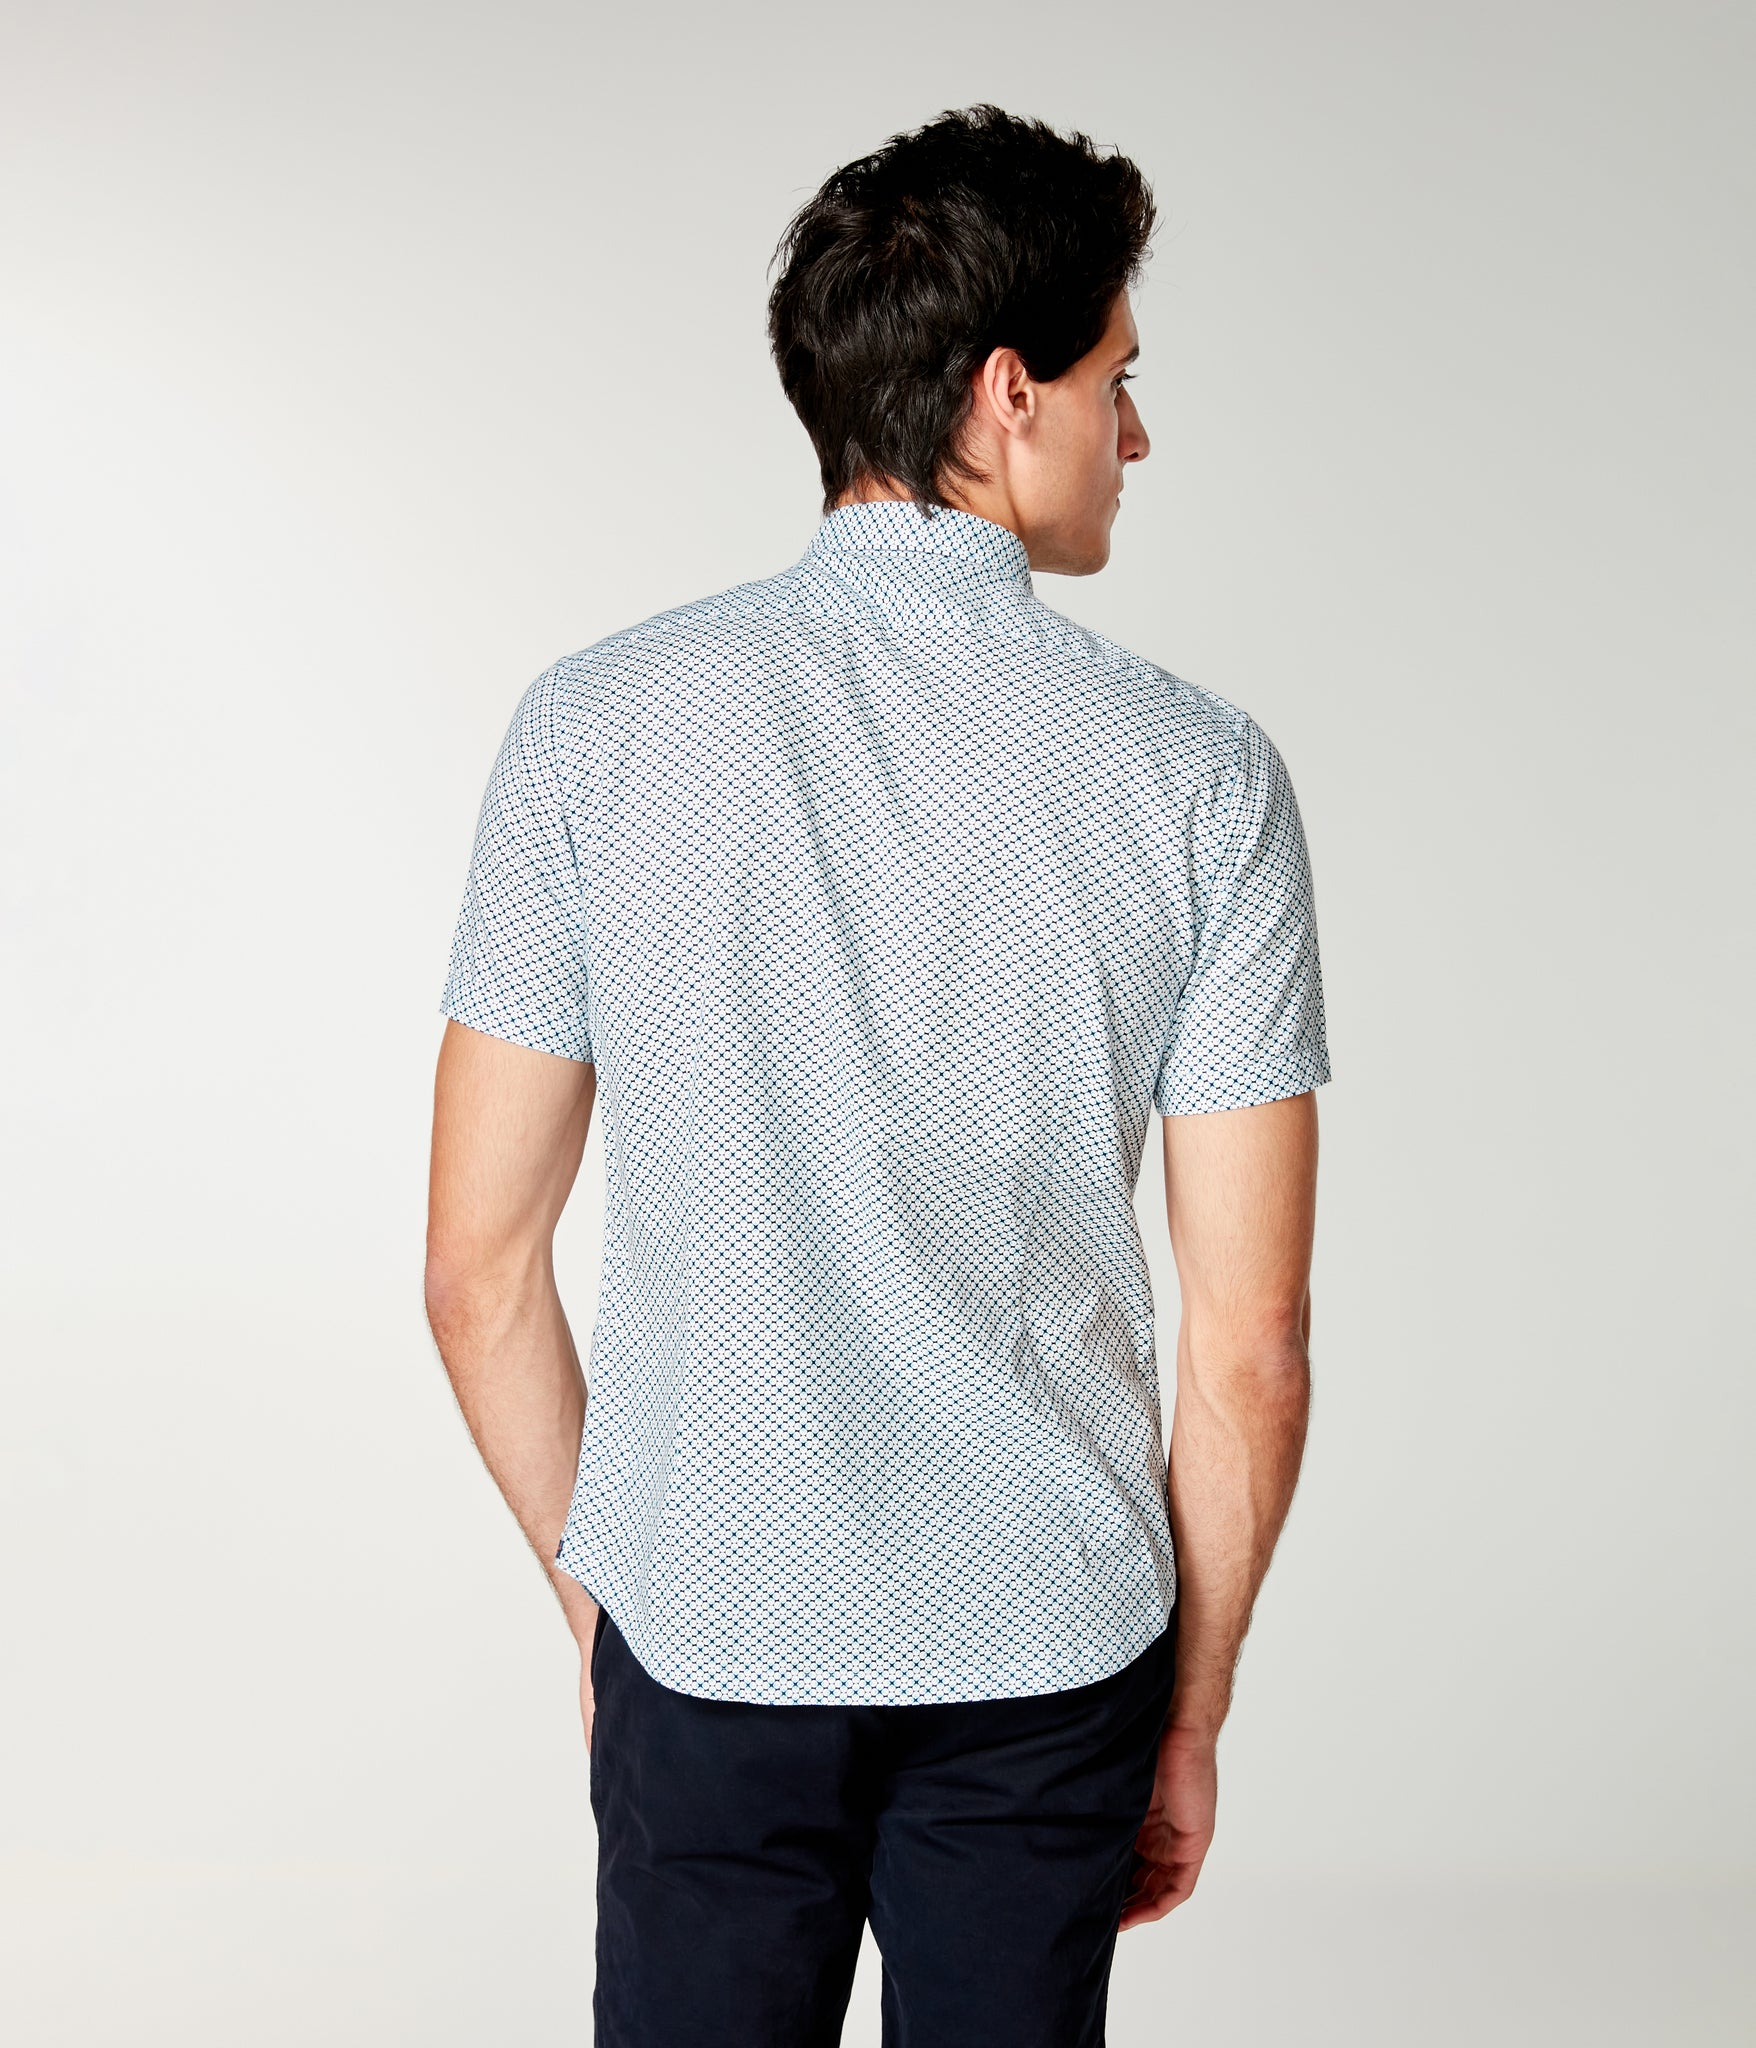 Woven On-Point Shirt - Navy Clover Mid Century